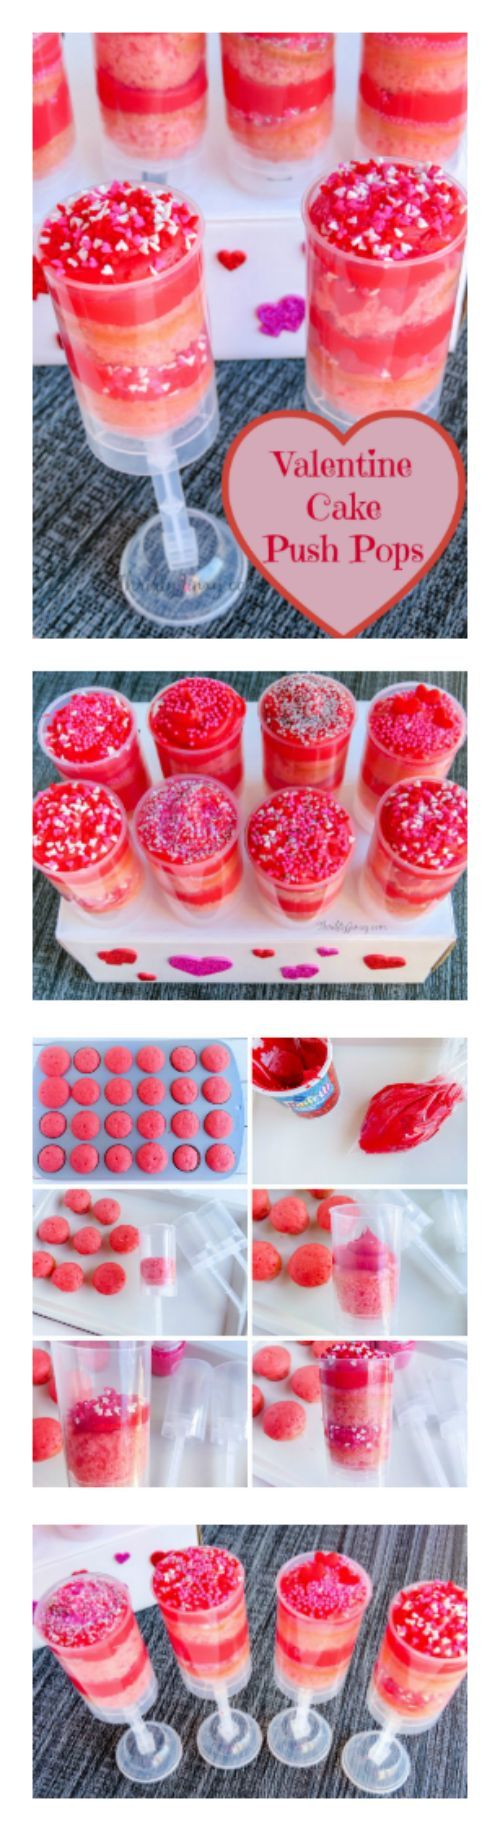 Use push pop containers to make this yummy and adorable Valentine Cake Push Pops Recipe perfect for any Valentine's Day party.